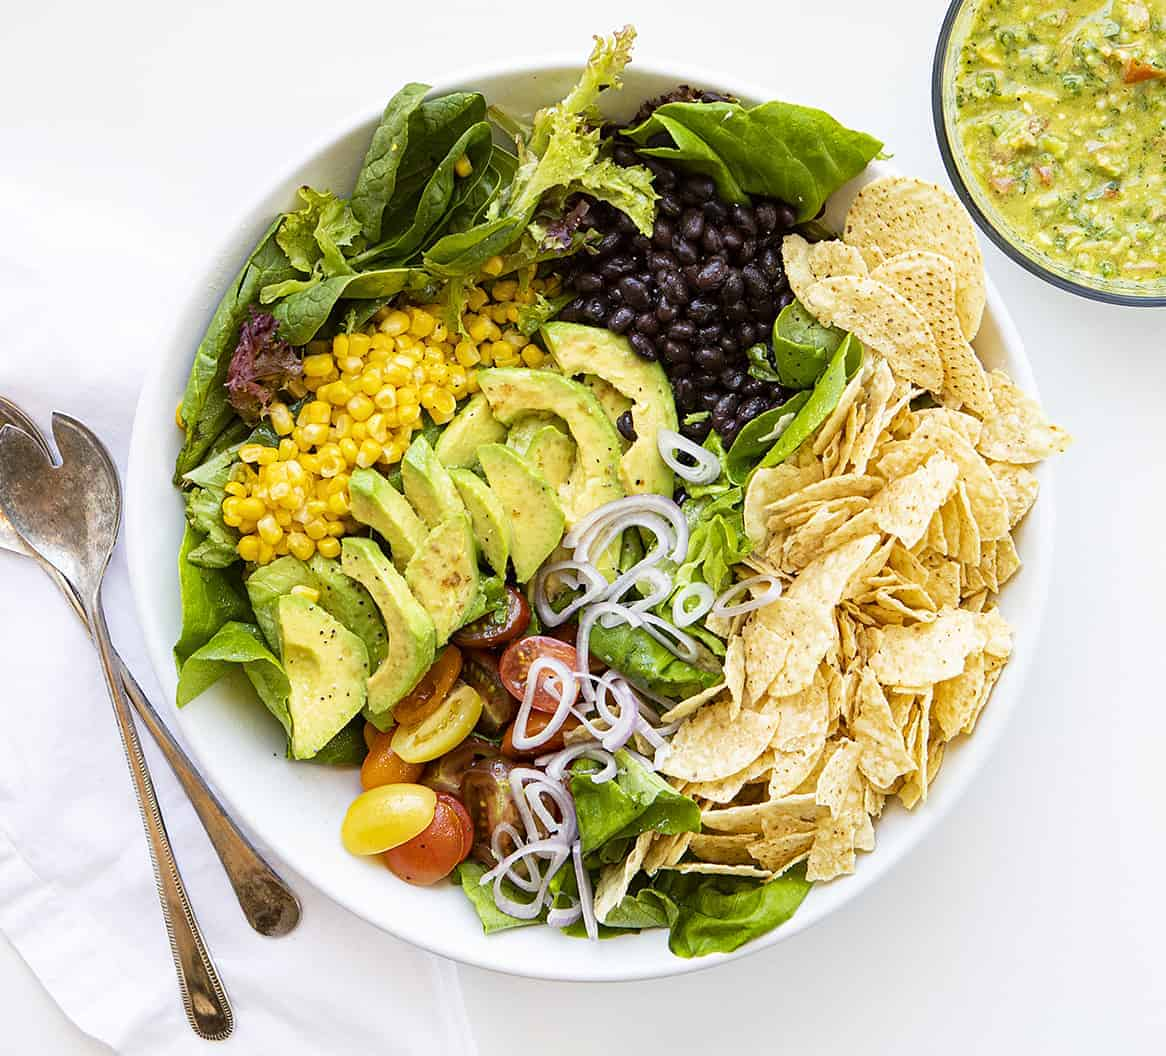 Overhead Image of California Guacamole Salad Before Ingredients are Tossed Together on White Surface